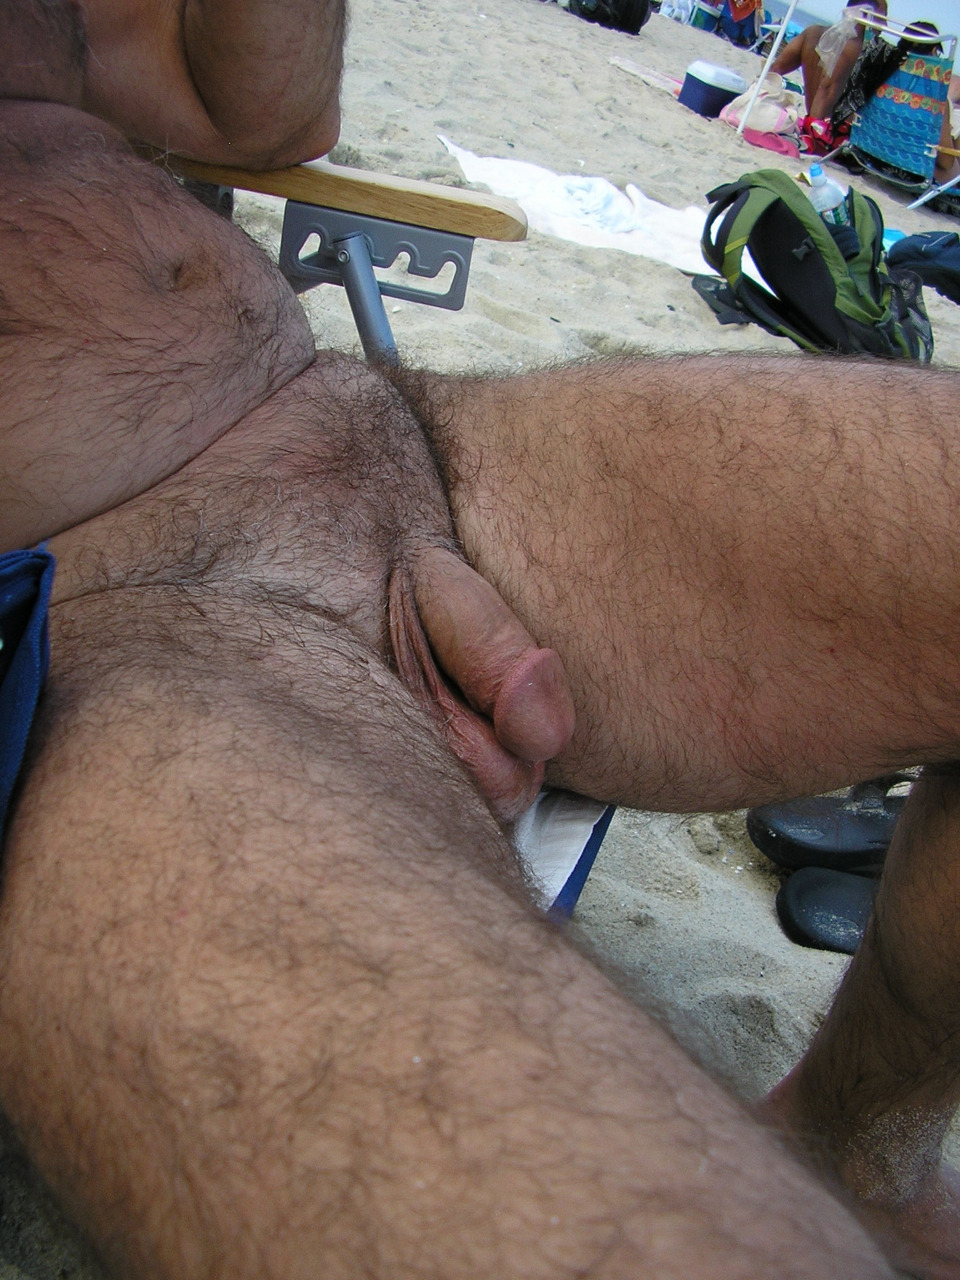 Originally from http://hairyones4u.tumblr.com/post/47839485866.